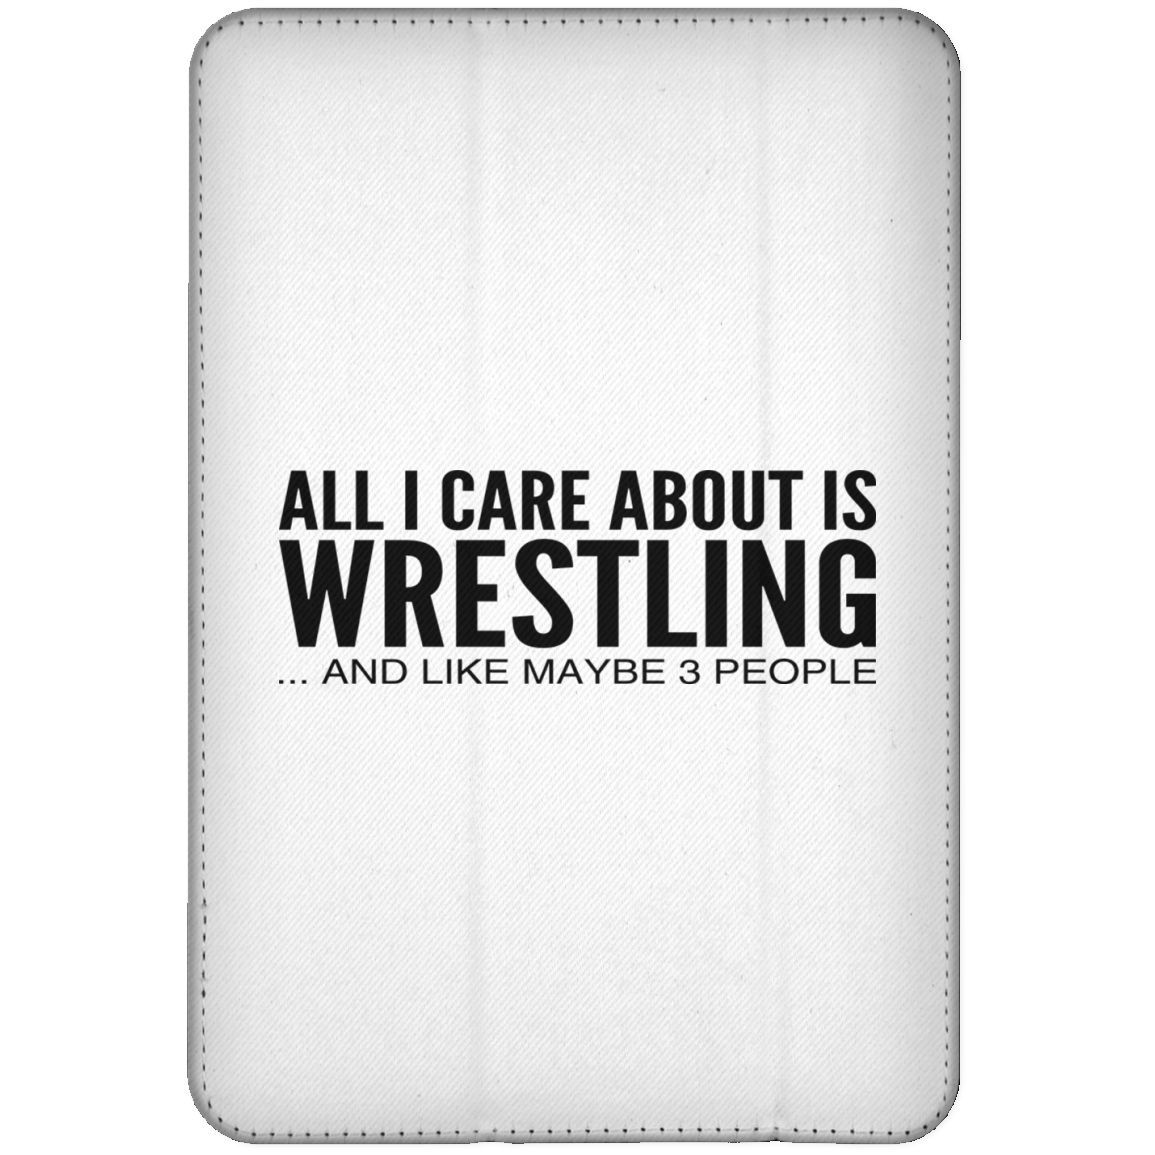 All I Care About Is Wrestling And Like Maybe 3 People iPad Cases